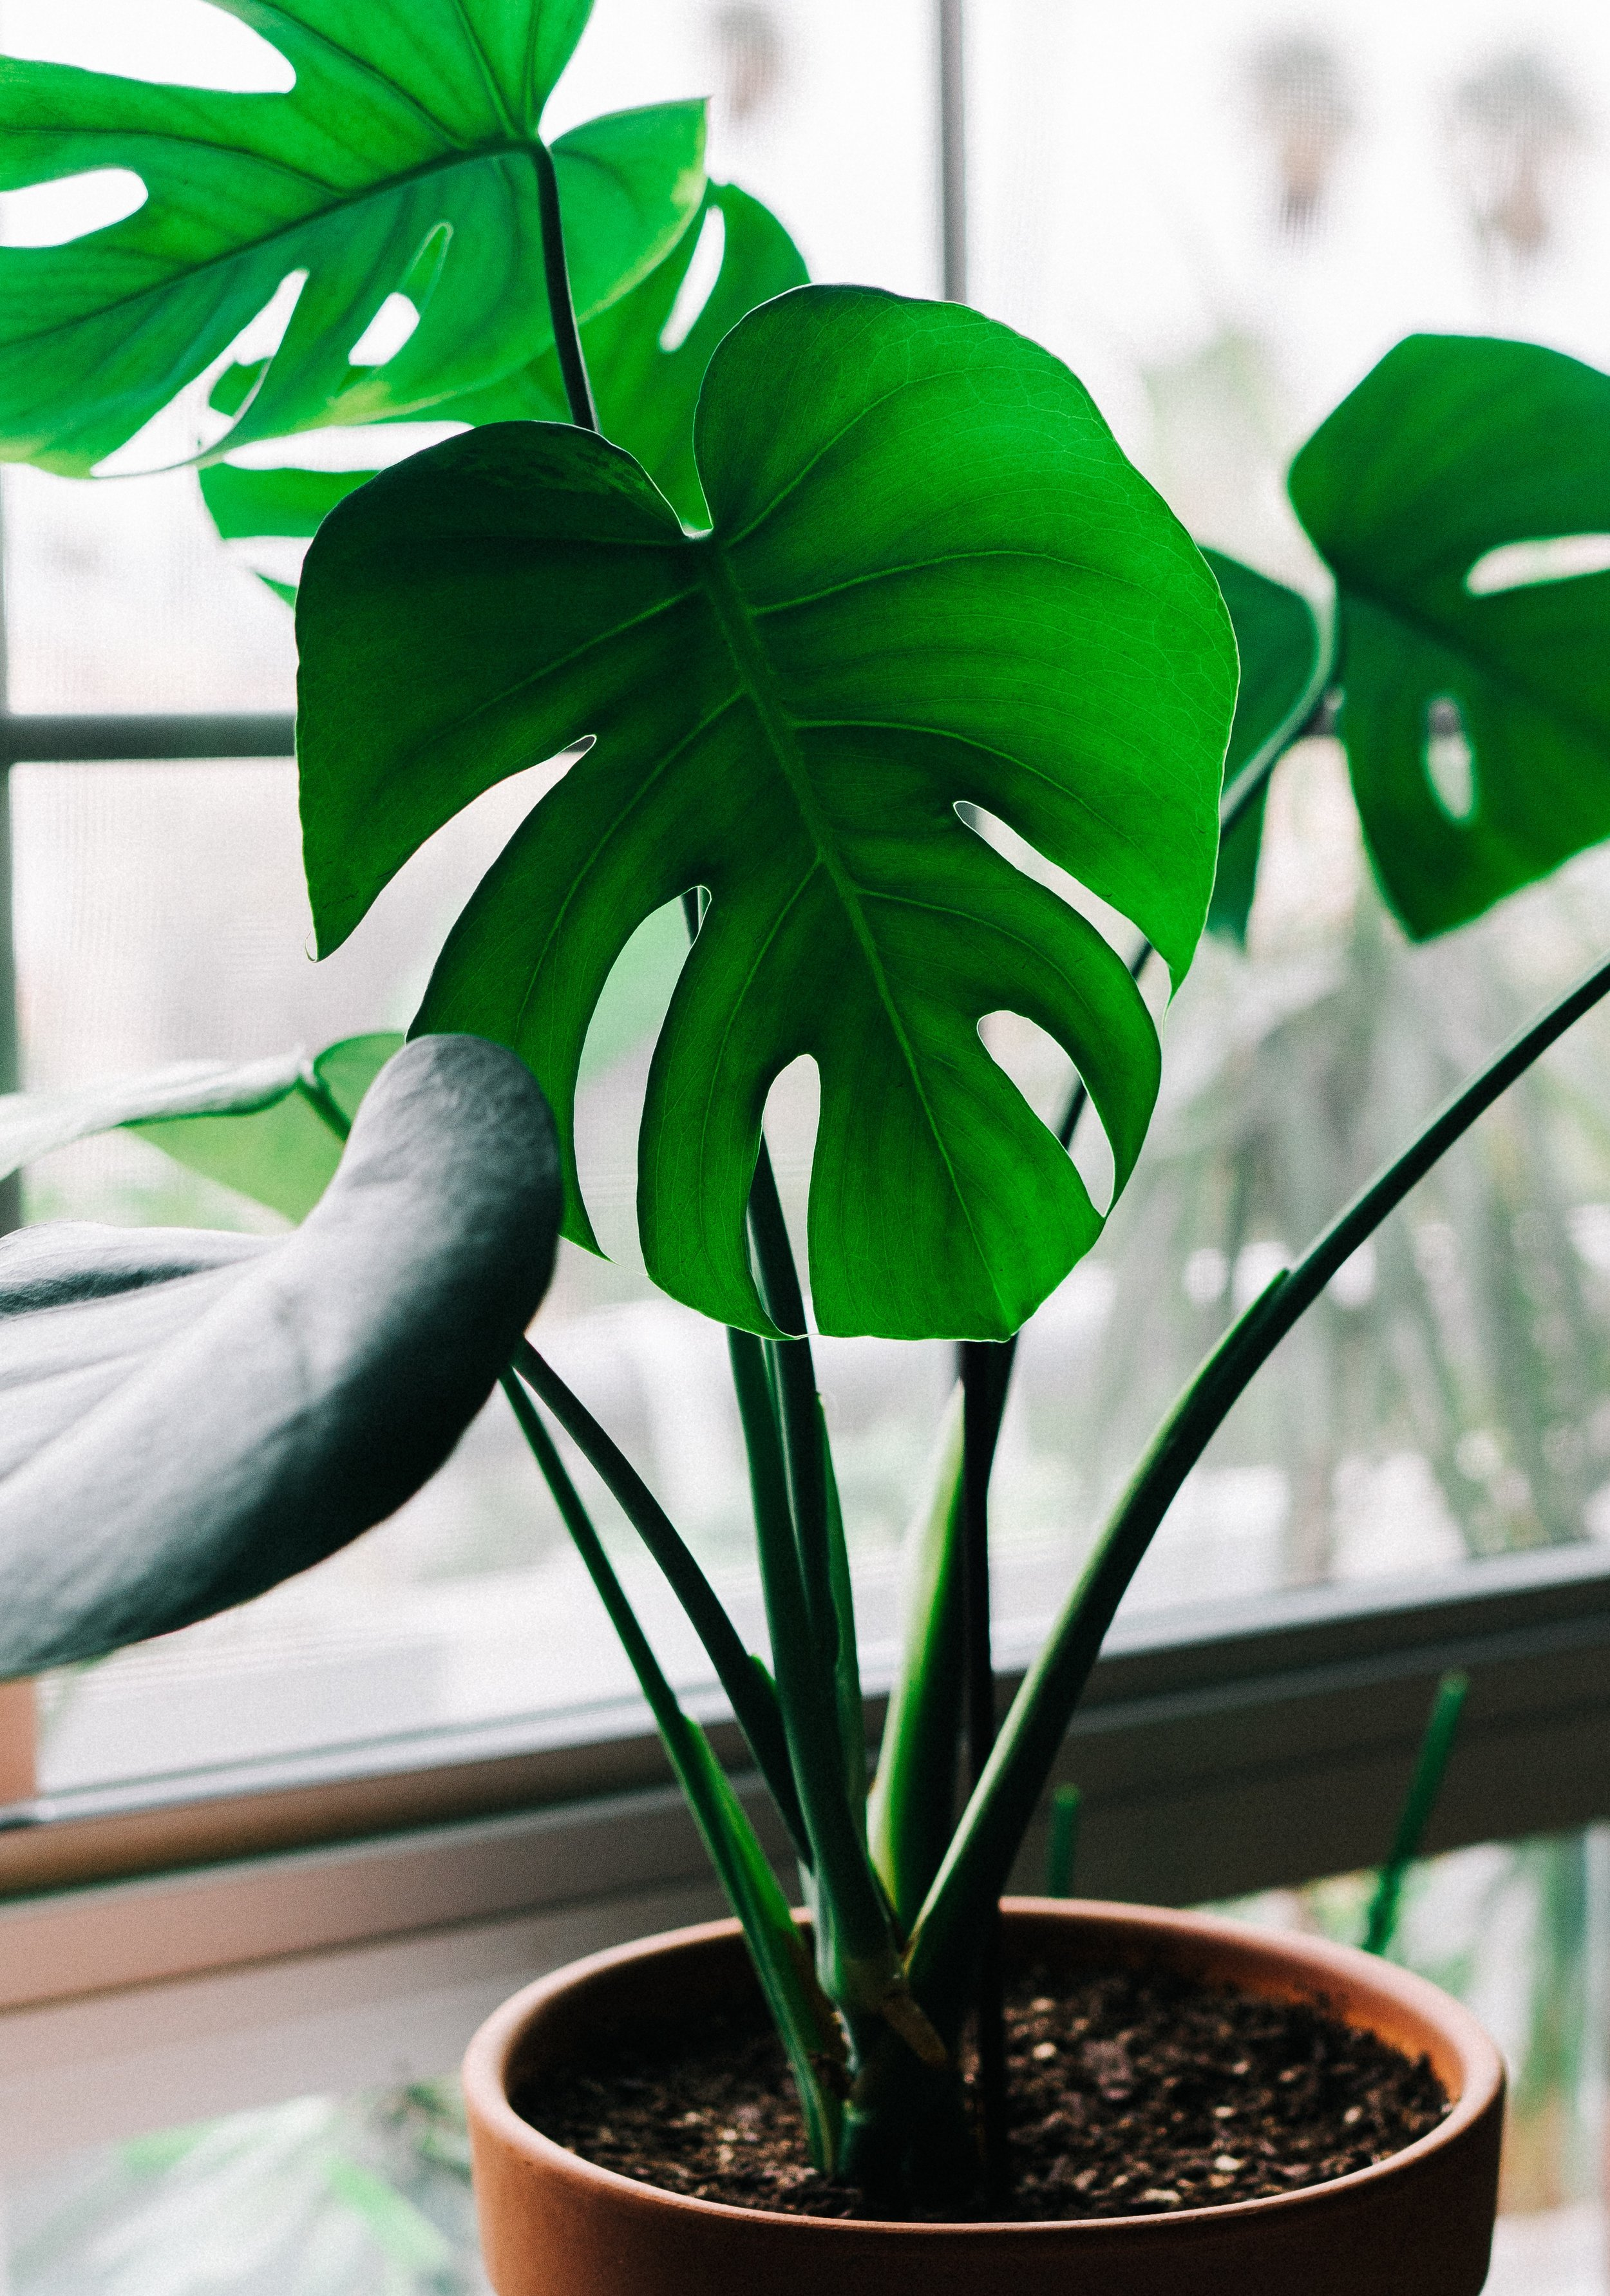 Monstera deliciosa - a.k.a. the Split Leaf Philodendron.Those iconic leaves! These huge majestic plants are sobeautiful, and I actually have a few faux stems sitting around that are also waiting for the perfect vessel to live in, but just haven't run into anything perfect yet. With this real life, living, breathing version though, I'm thinking this would do well in my office, which tends to get most of the morning and afternoon light and warms up quite a bit (more so than the rest of the house).